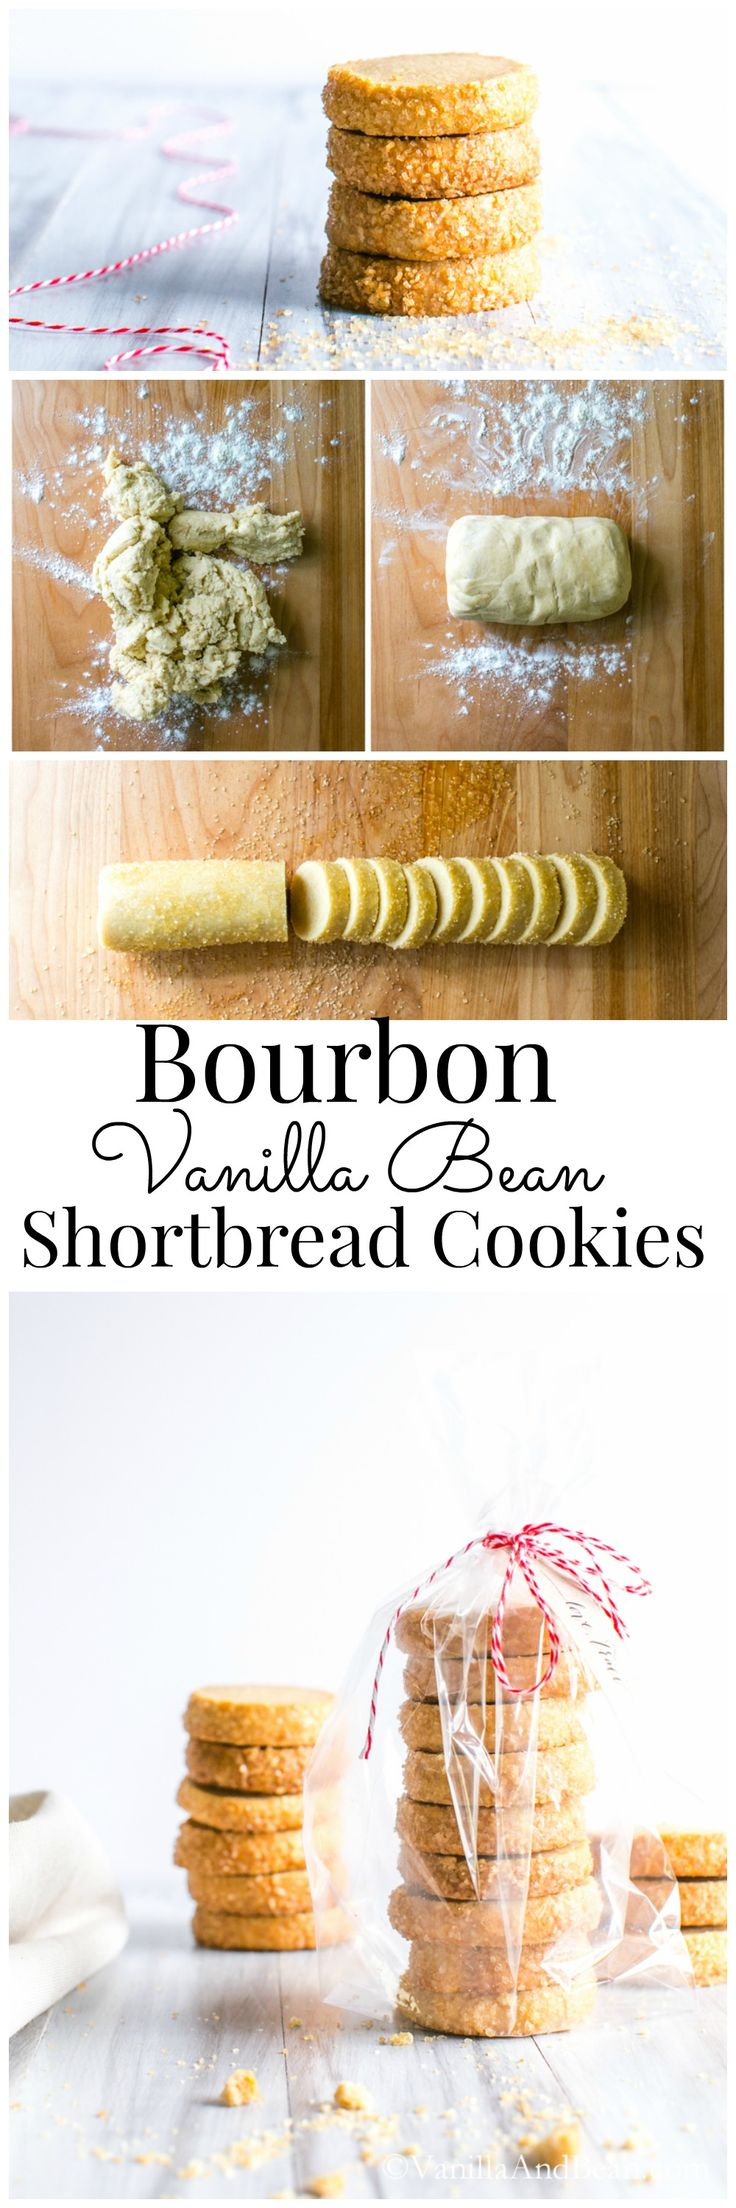 Bourbon and Vanilla shine in this buttery shortbread treat. Easy to make, and makes a fabulous gift!   Vanilla And Bean (Christmas Bake Shortbread)